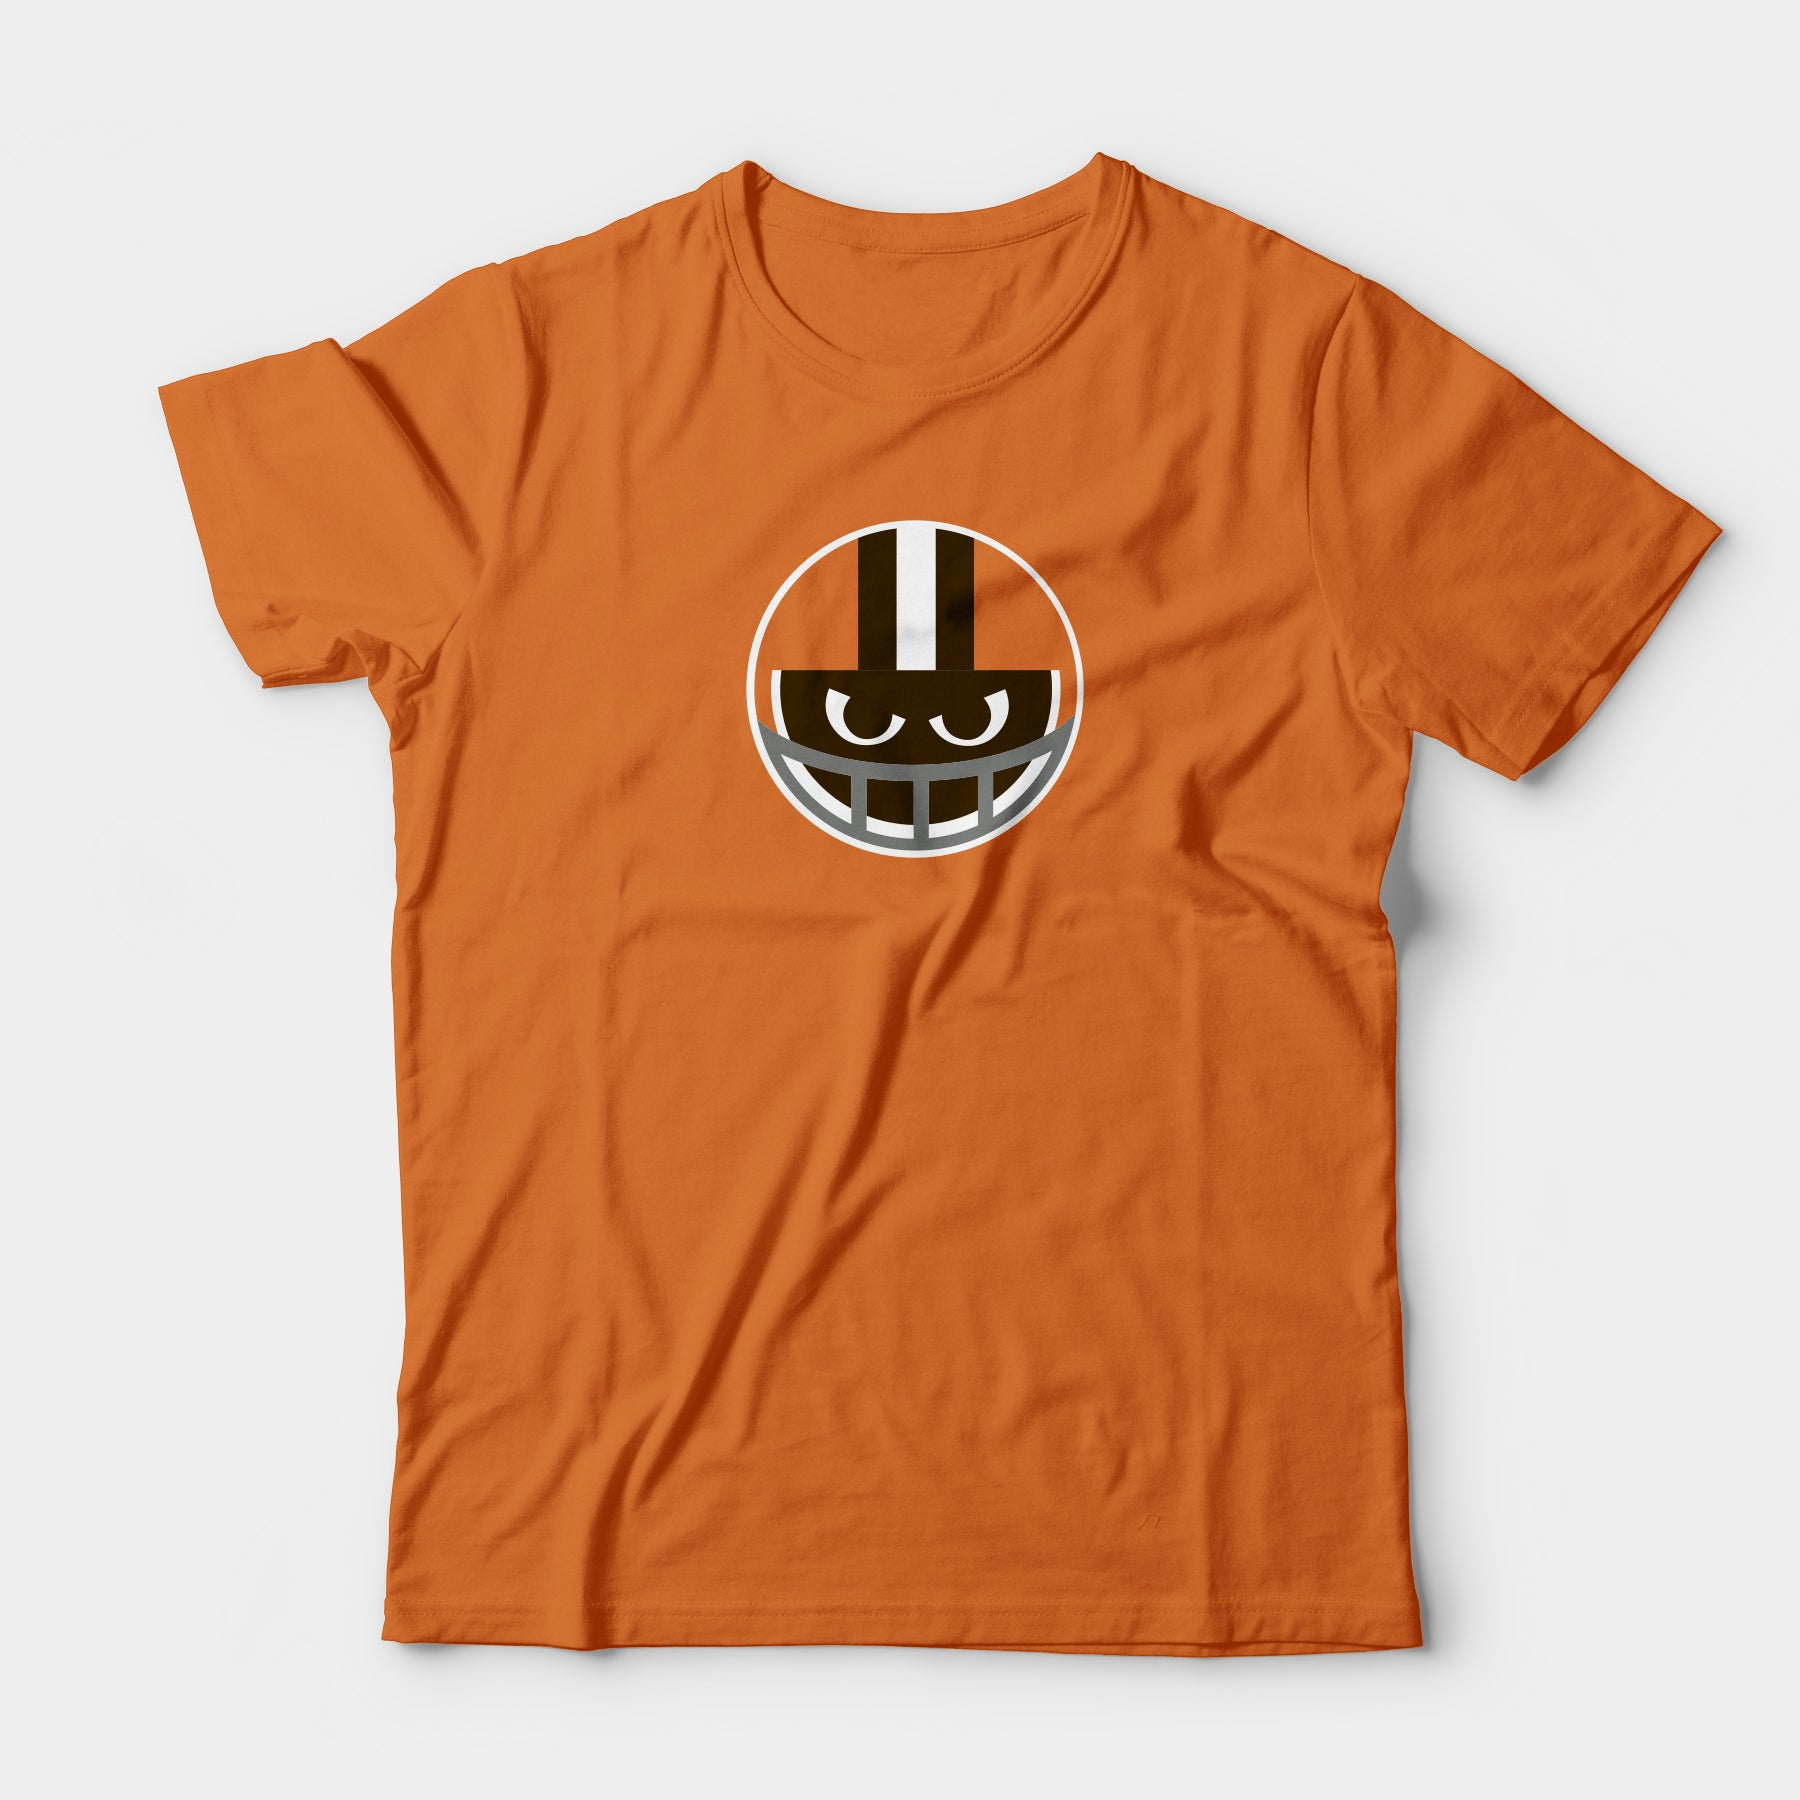 Lil'Destroyer Tee, Throwback Orange